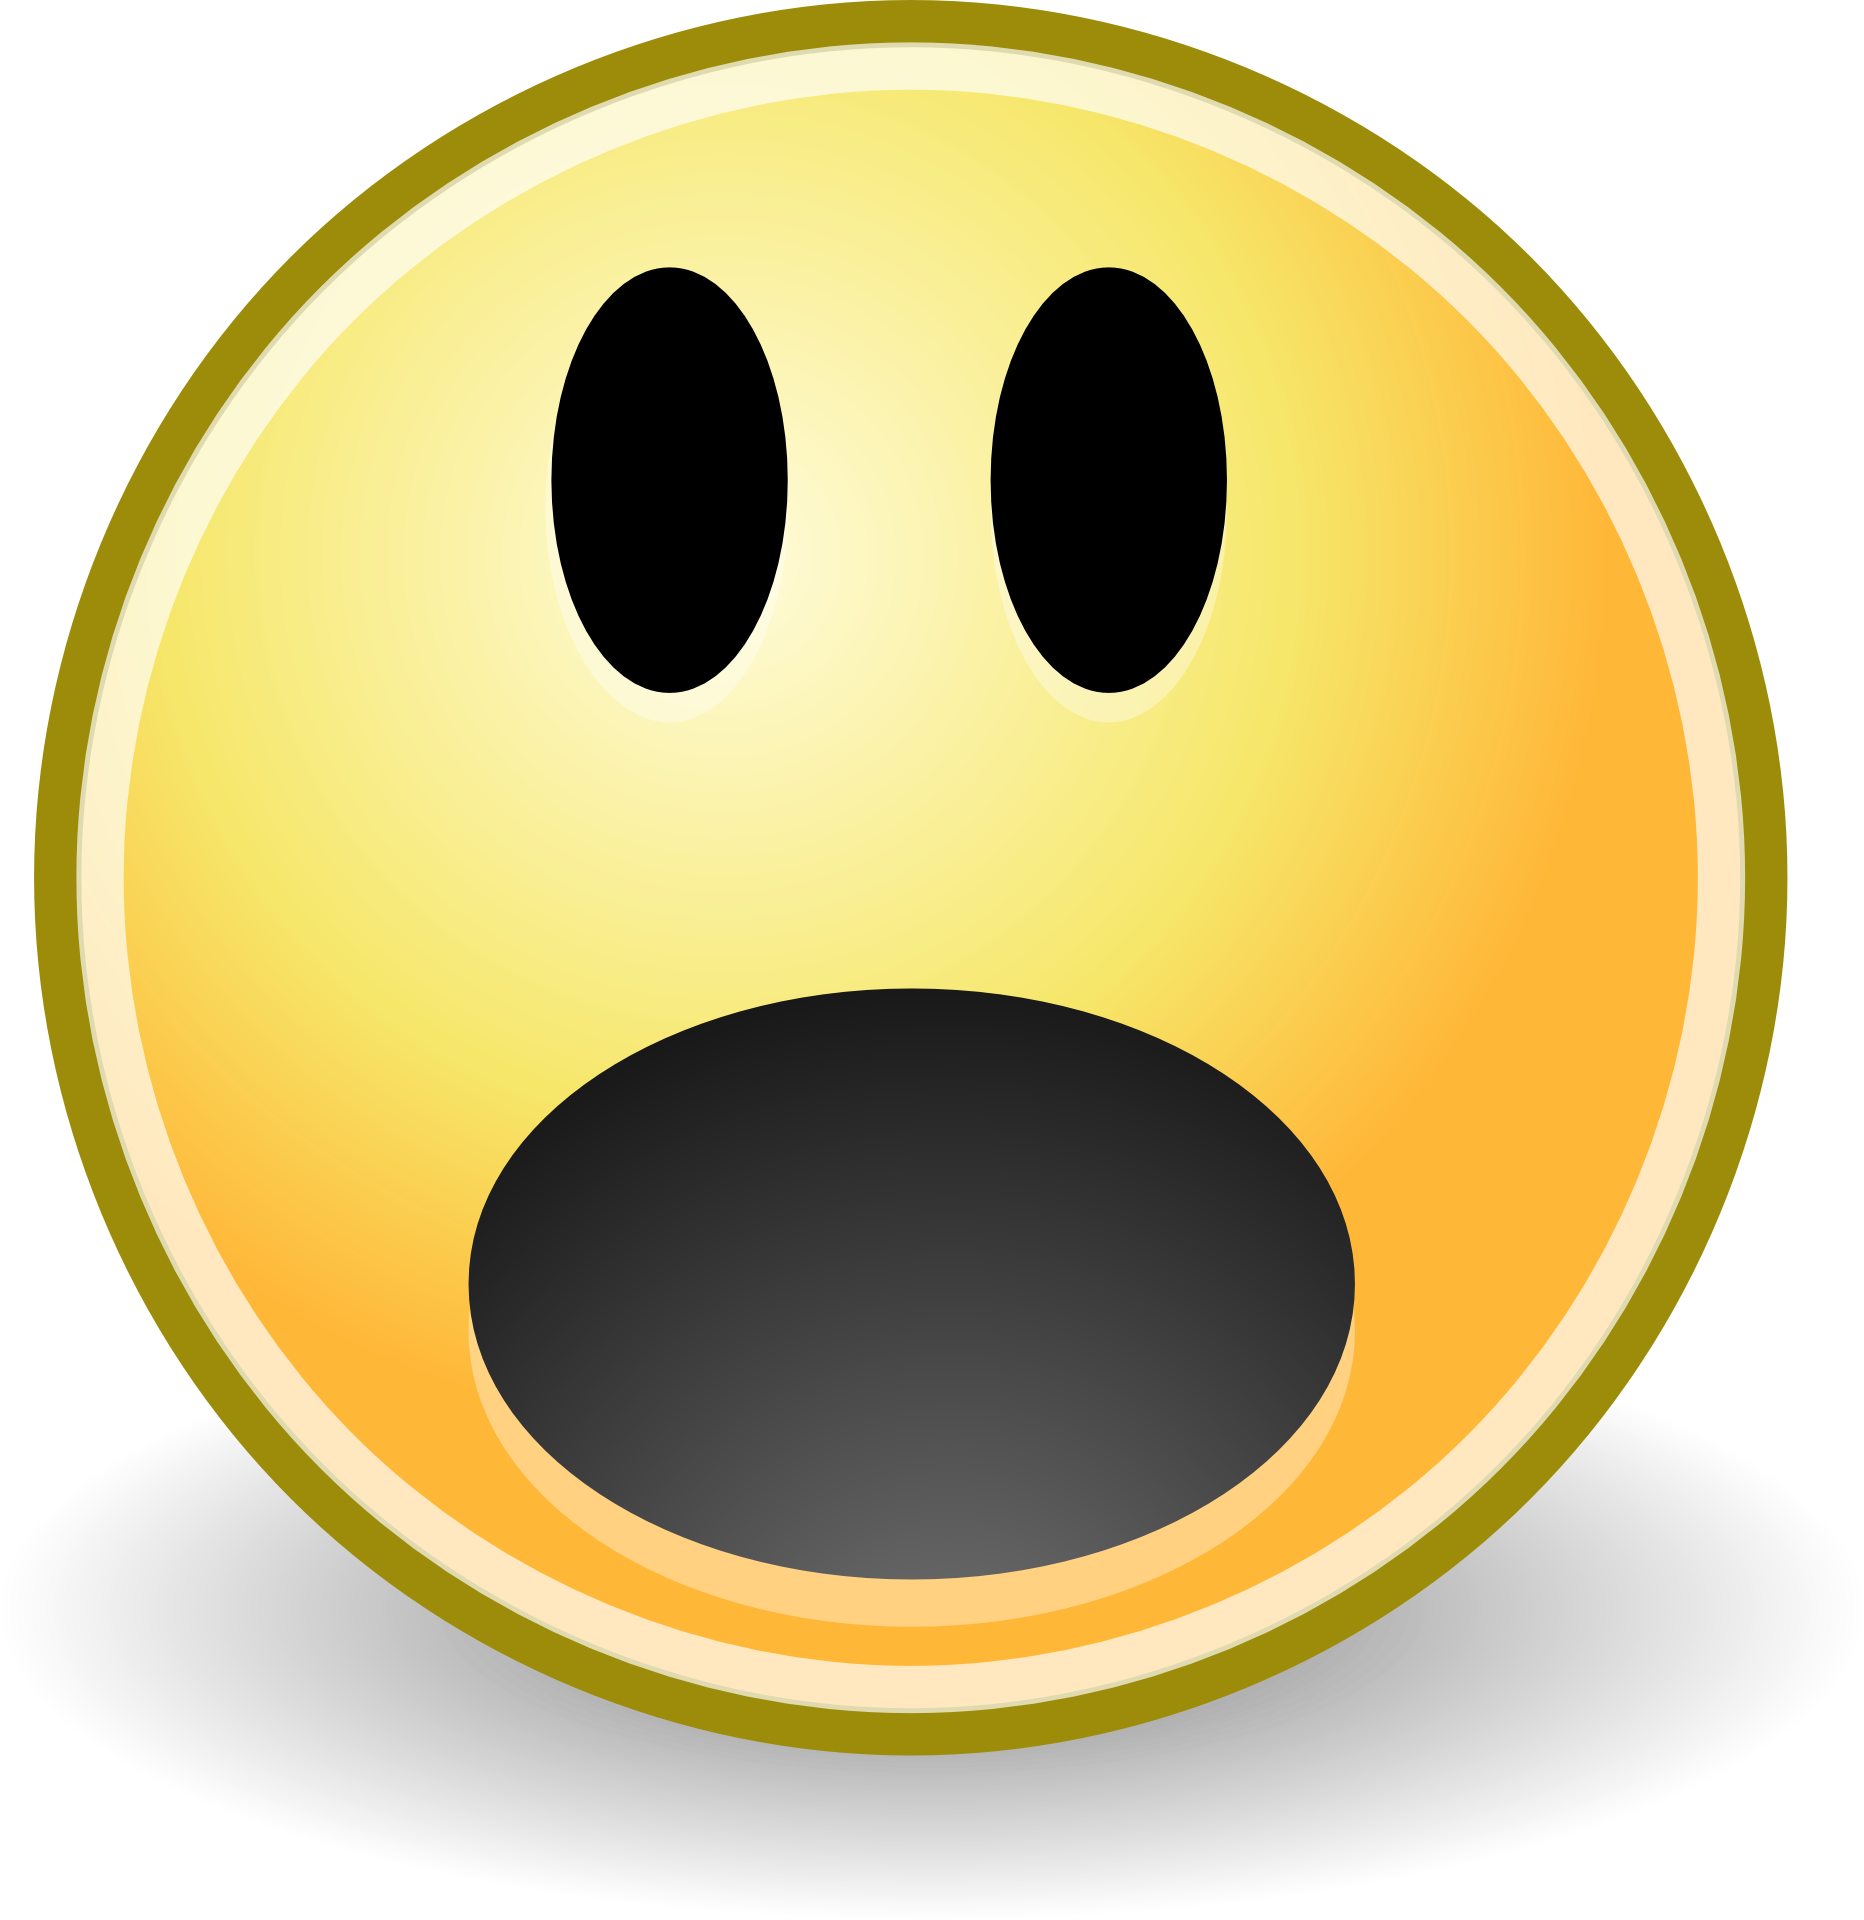 Scared clipart face vector free Clipart,emoji with scared face free image vector free